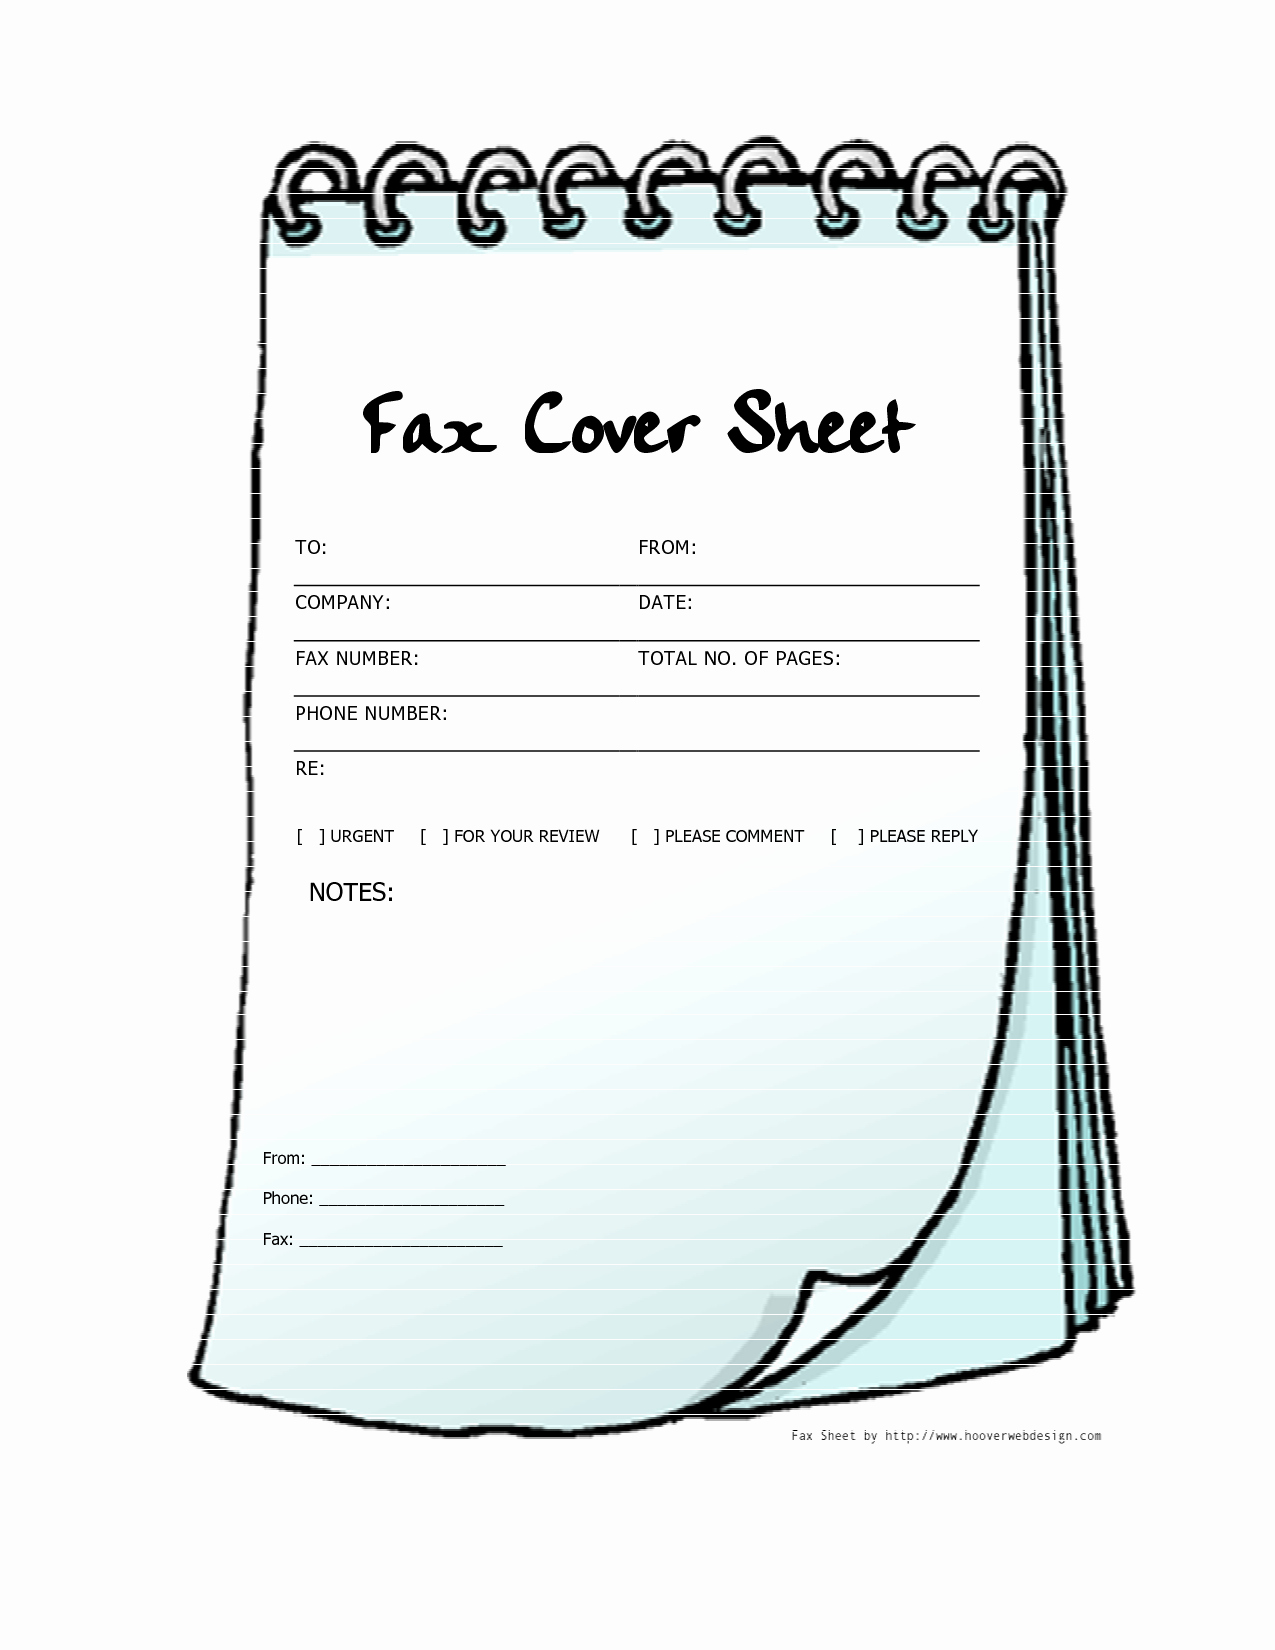 Printable Fax Cover Sheets Pdf Lovely Free Printable Fax Cover Sheets